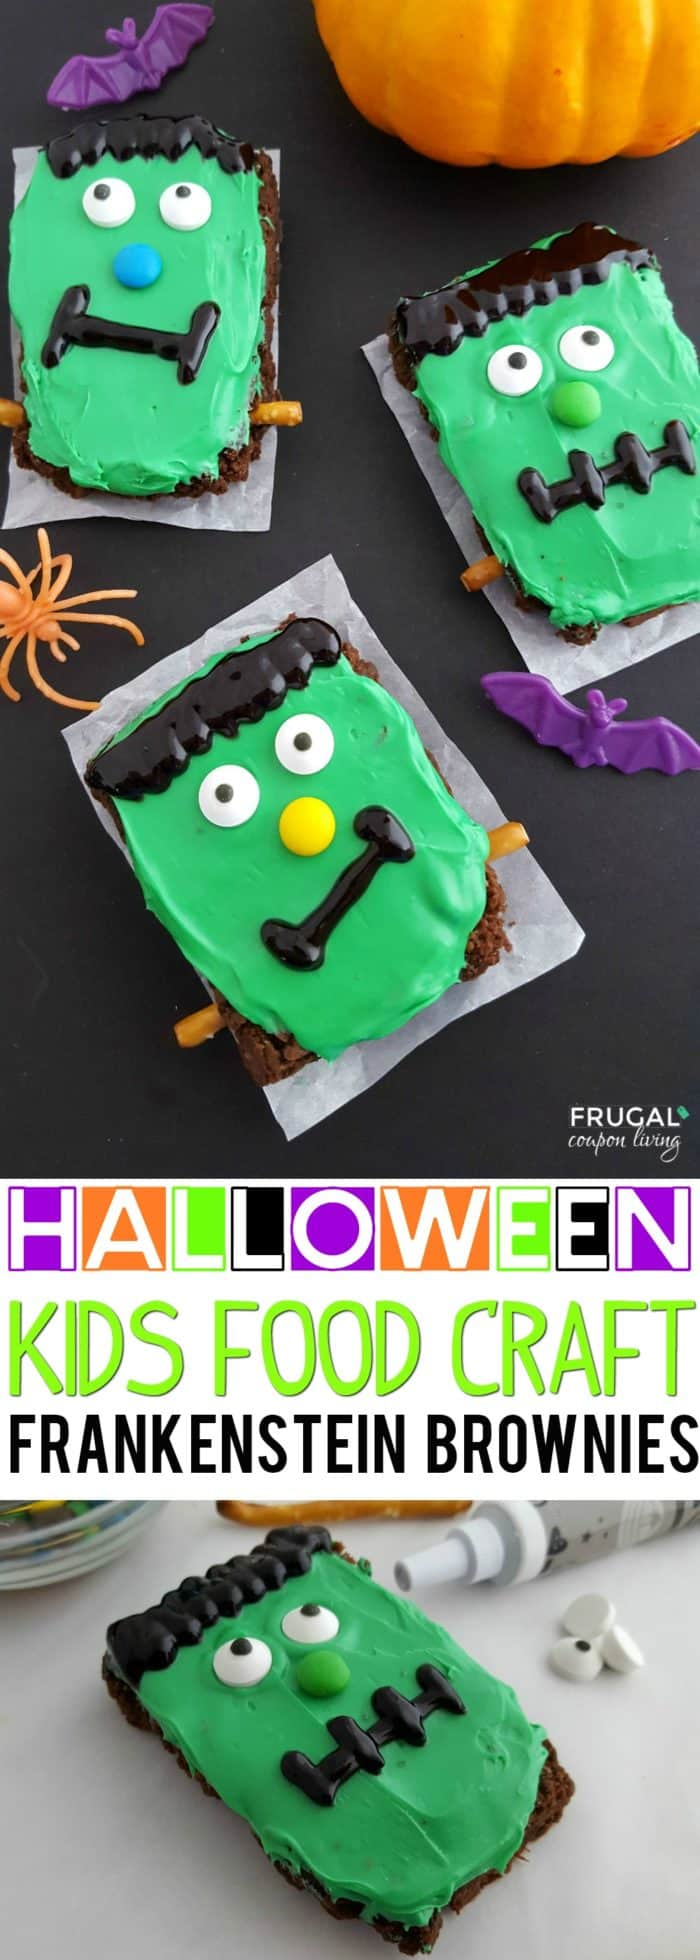 Feed your little monsters this tasty Halloween Dessert. We love these Frankenstein Brownies for a Halloween class party idea or to serve during the month of October for a home dessert idea. #FrugalCouponLiving  #halloween #halloweenbrownies #halloweendesserts #kidsfoodcrafts #frankensteinrecipe #halloweenrecipewithfrankenstein #recipes #brownies #brownierecipe #frankenstein #monster #monsterrecipe #monsterdessert